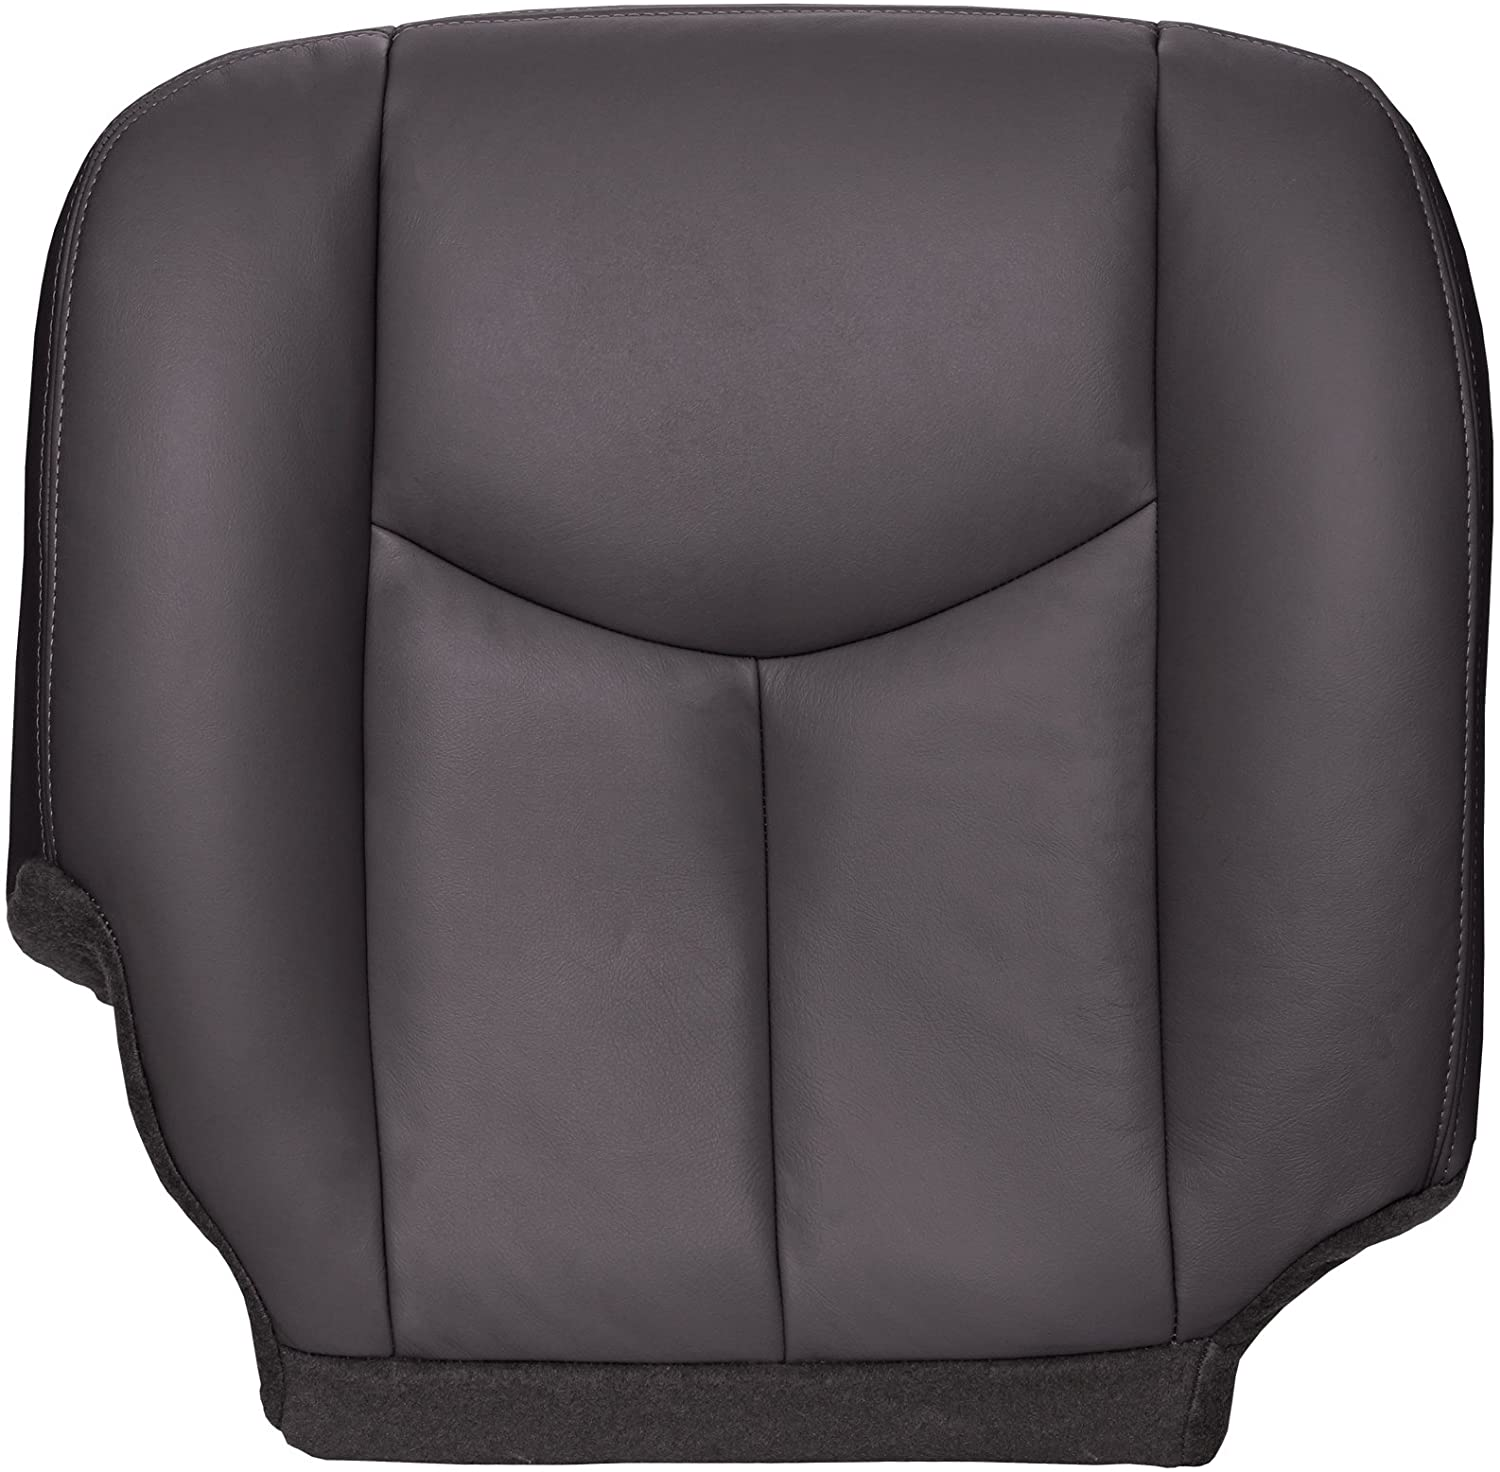 The Seat Shop Work Truck Passenger Bottom Replacement Seat Cover - Very Dark Pewter (Dark Gray) Vinyl (Compatible with 200